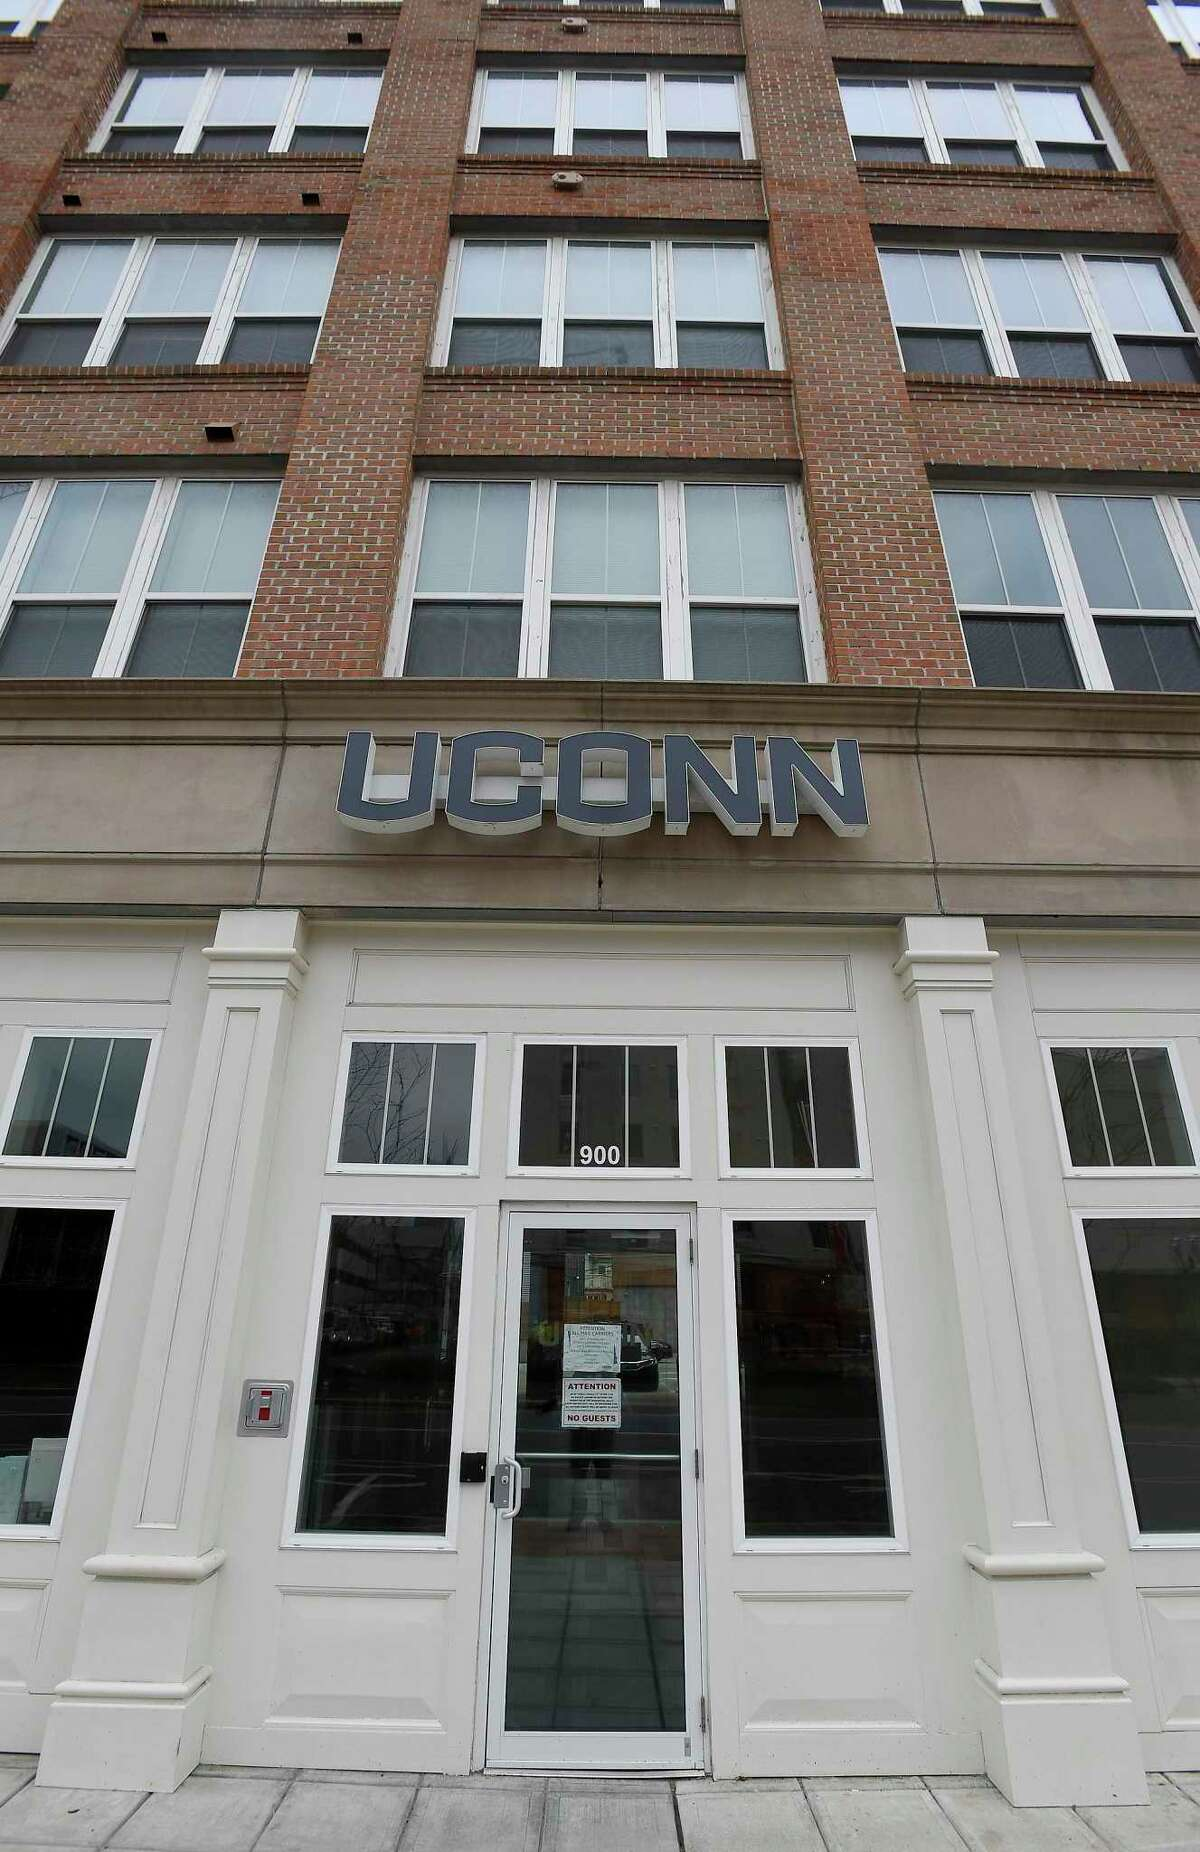 An exterior of UCONN Stamford's Residential Life building in Stamford, Connecticut on March 25, 2020.